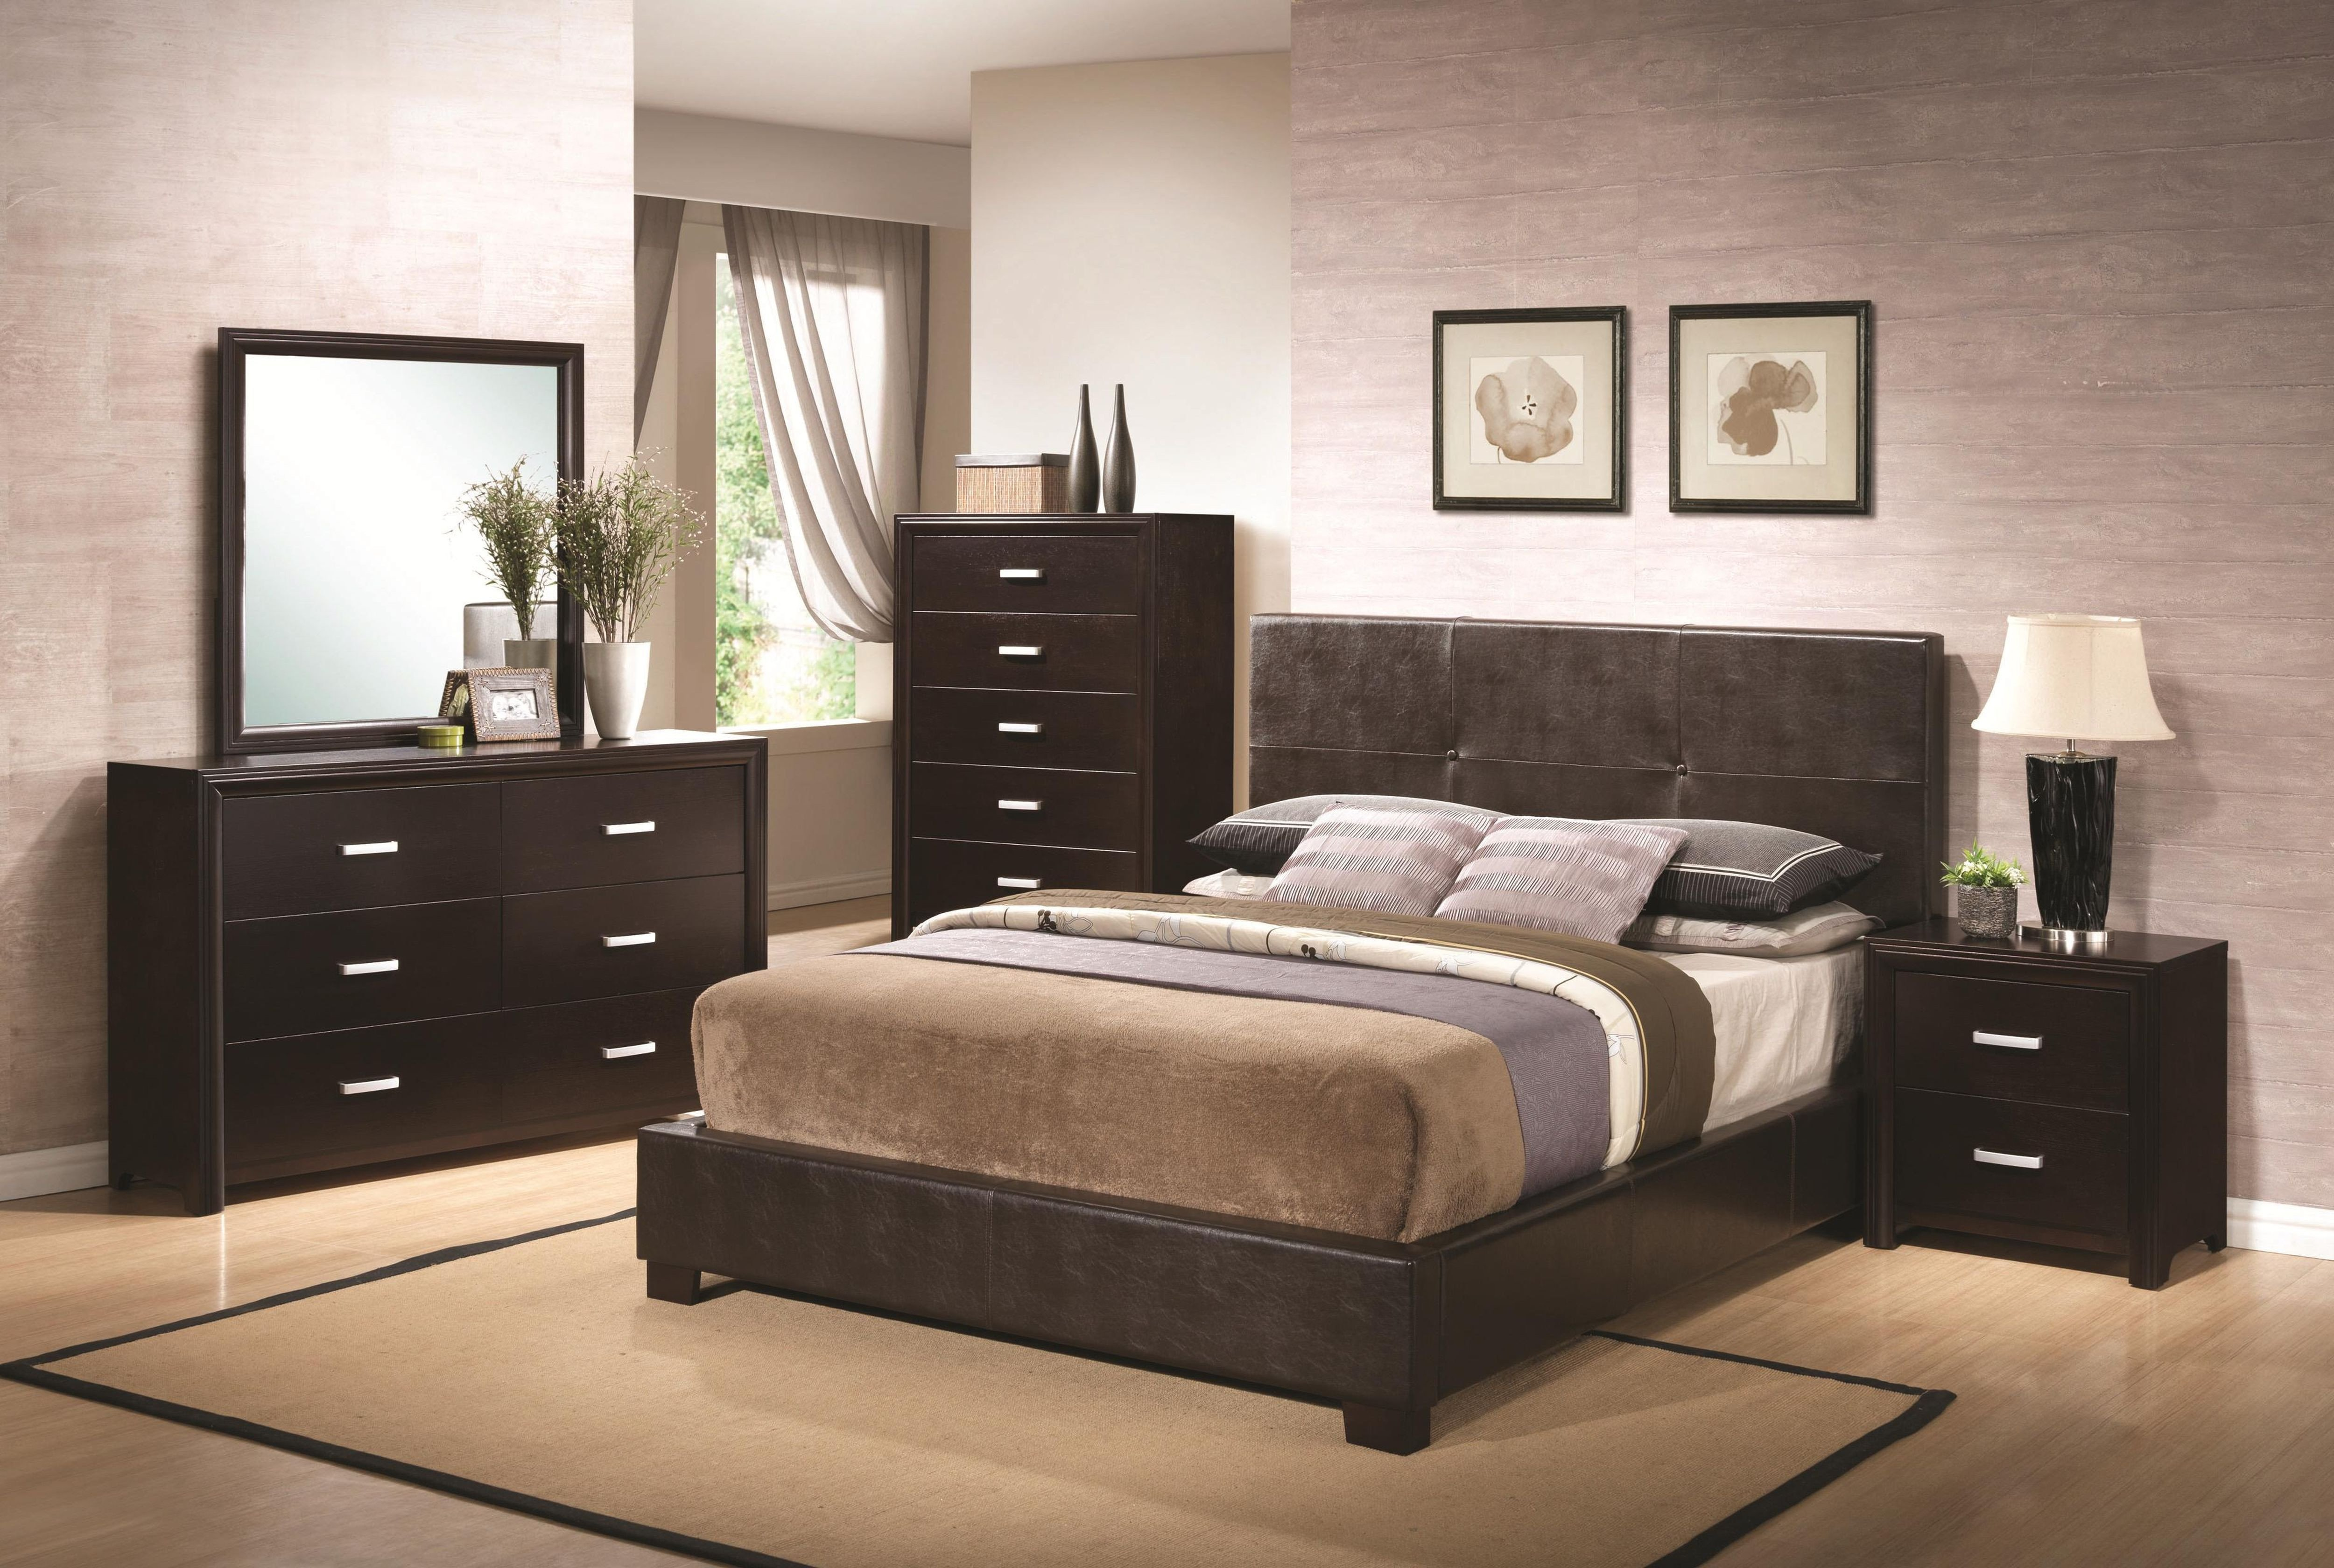 Ikea Bedroom Set Queen New Rooms to Go Queen Bedroom Set